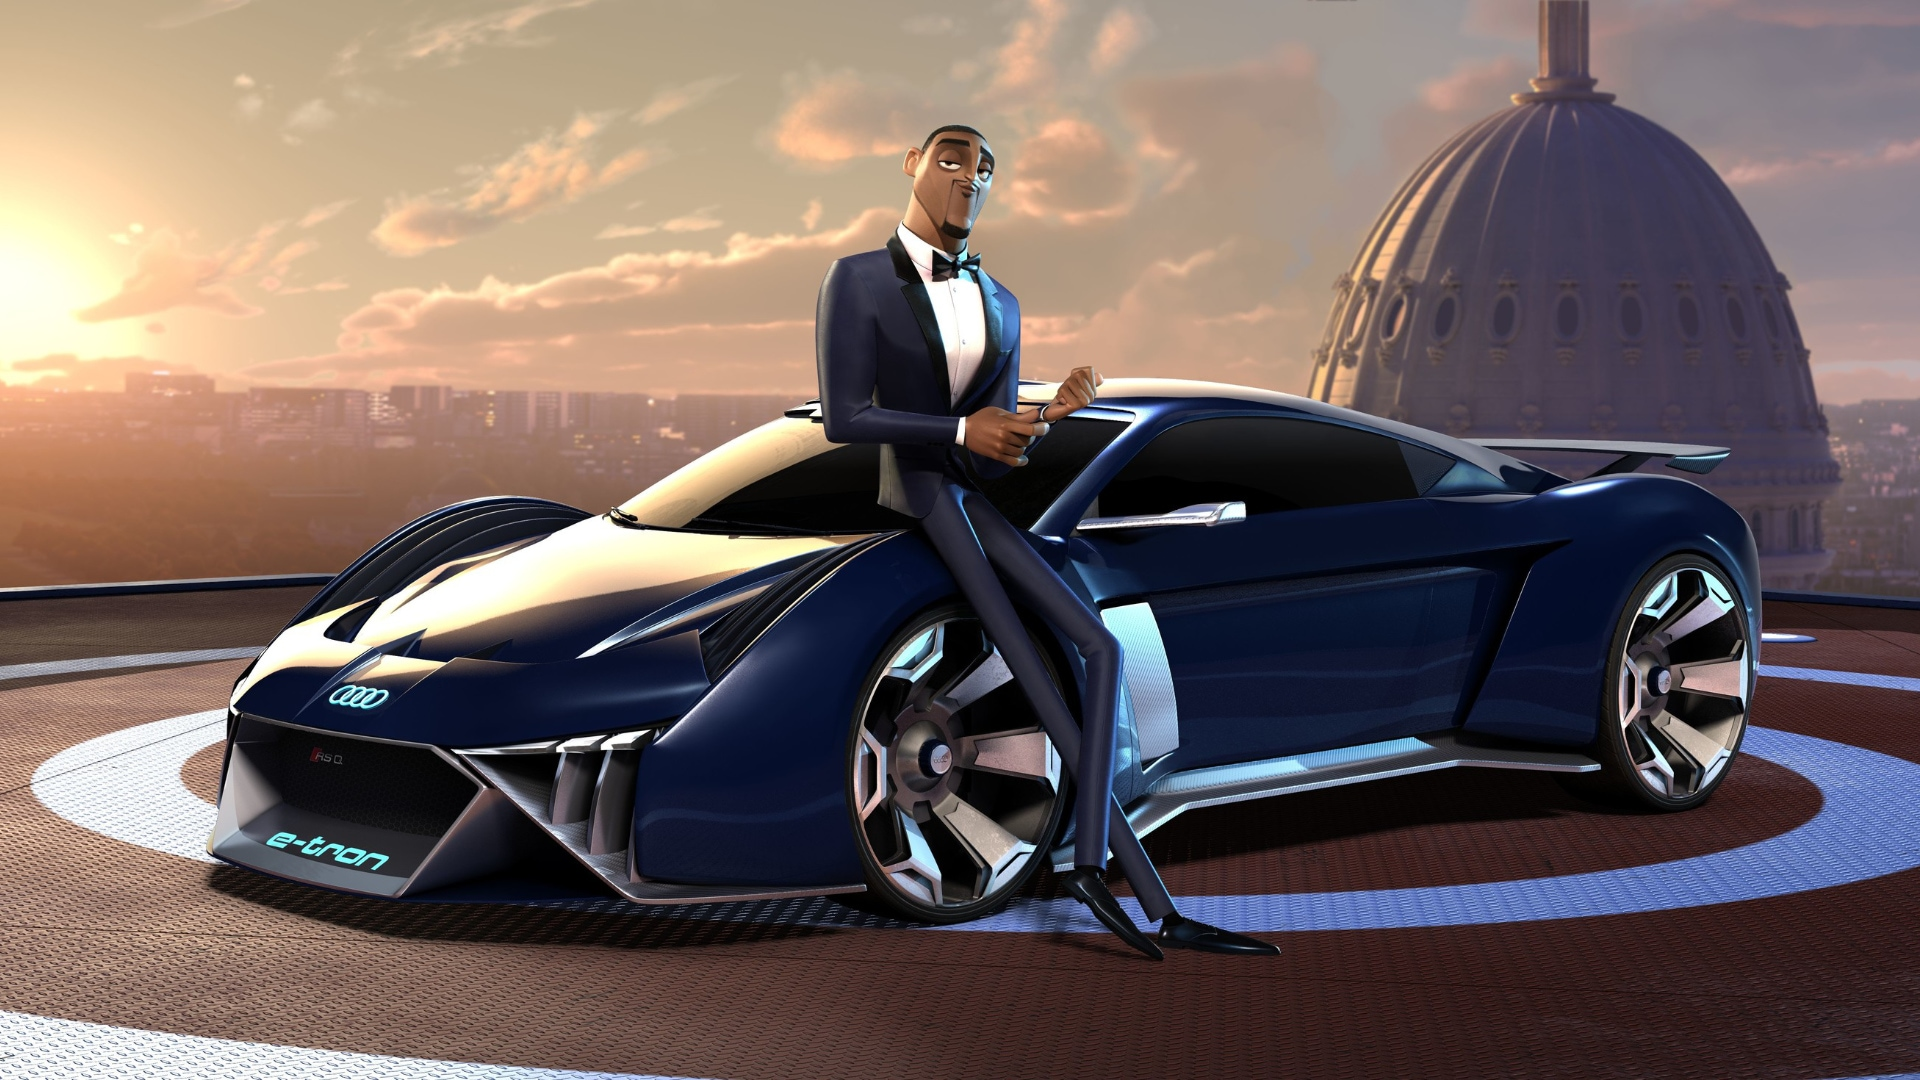 Spies In Disguise A Futuristic Animated Car Hits The Streets Audi Com